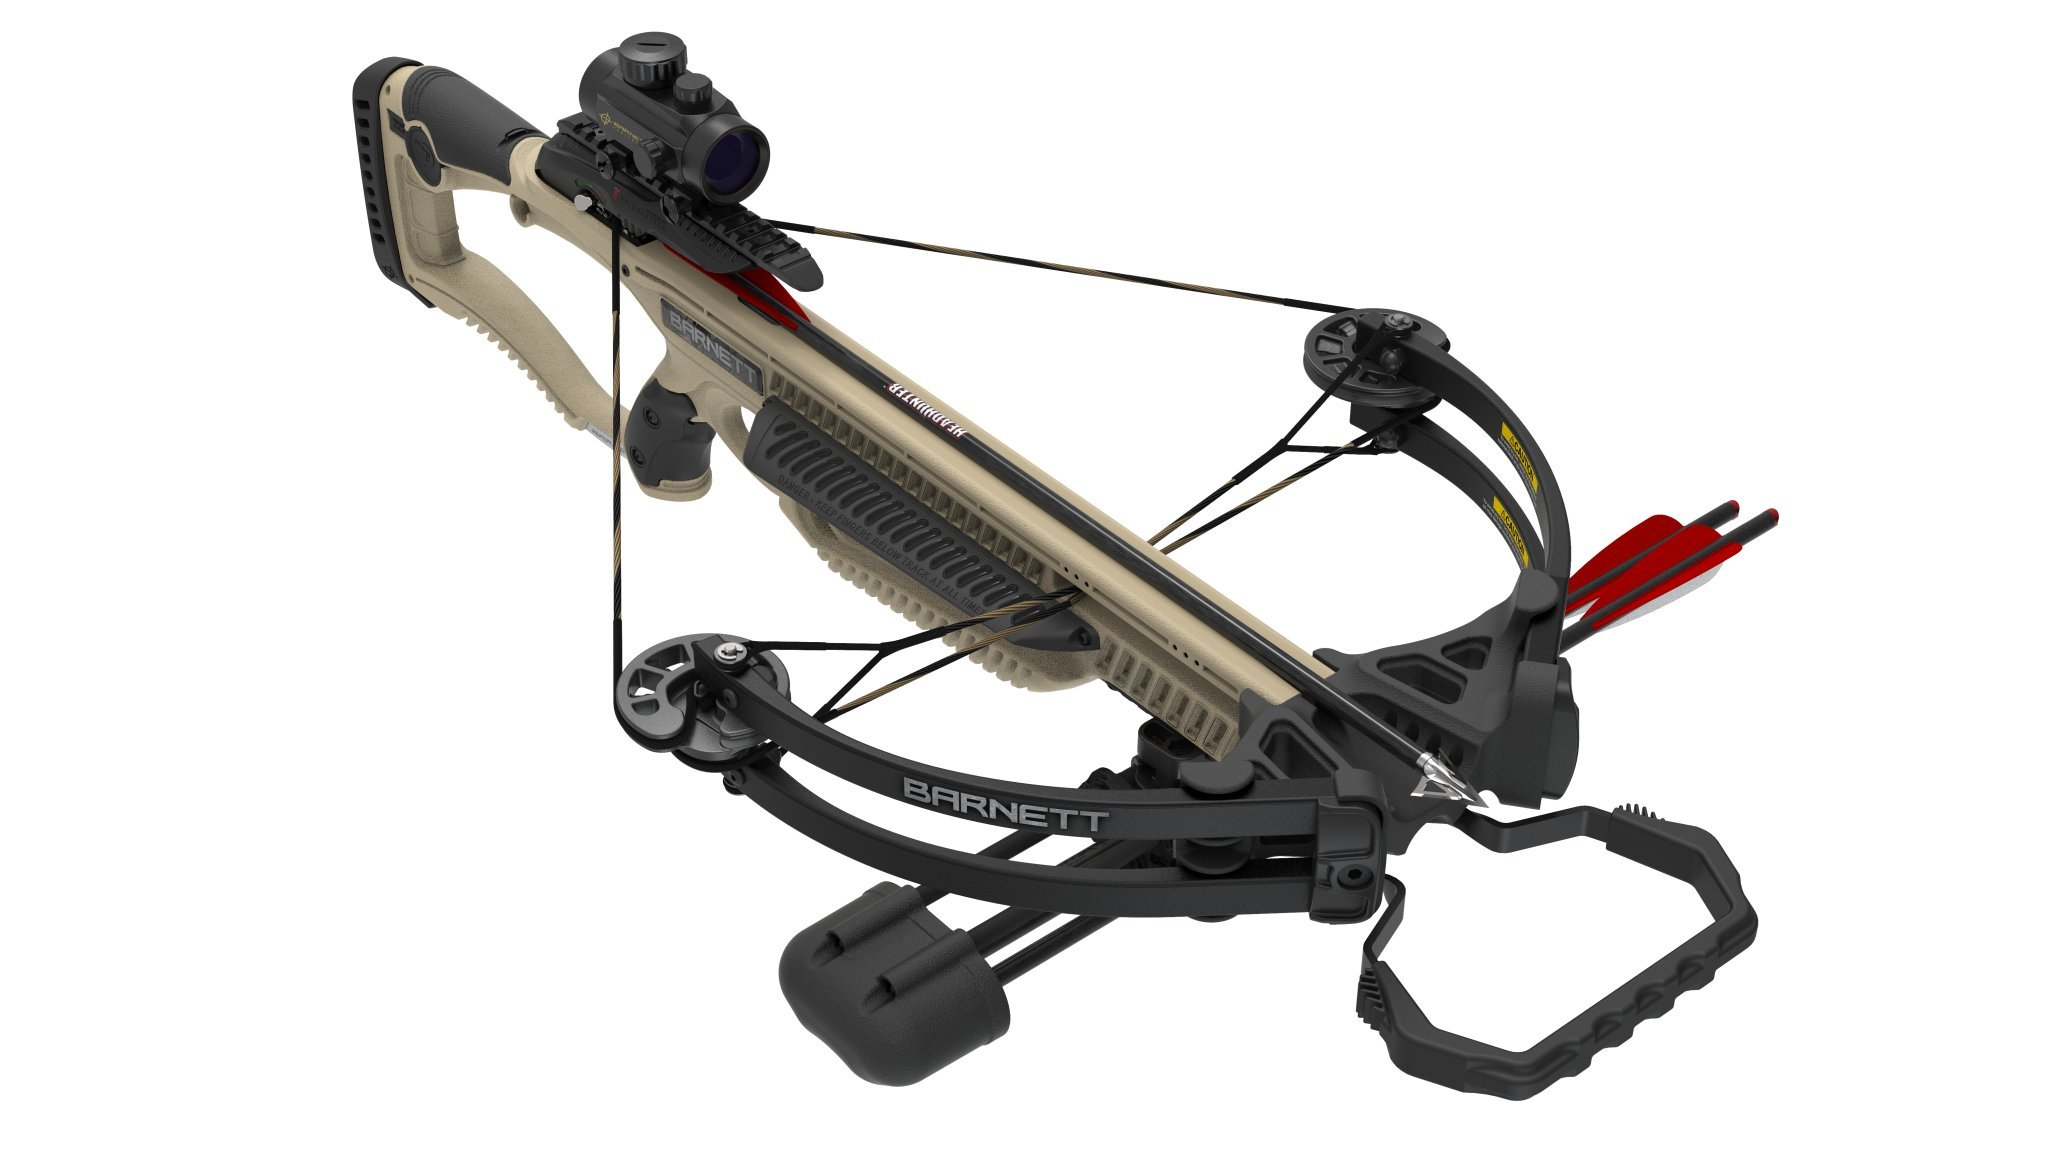 Barnett Recruit Terrain Crossbow, 330 FPS by Barnett